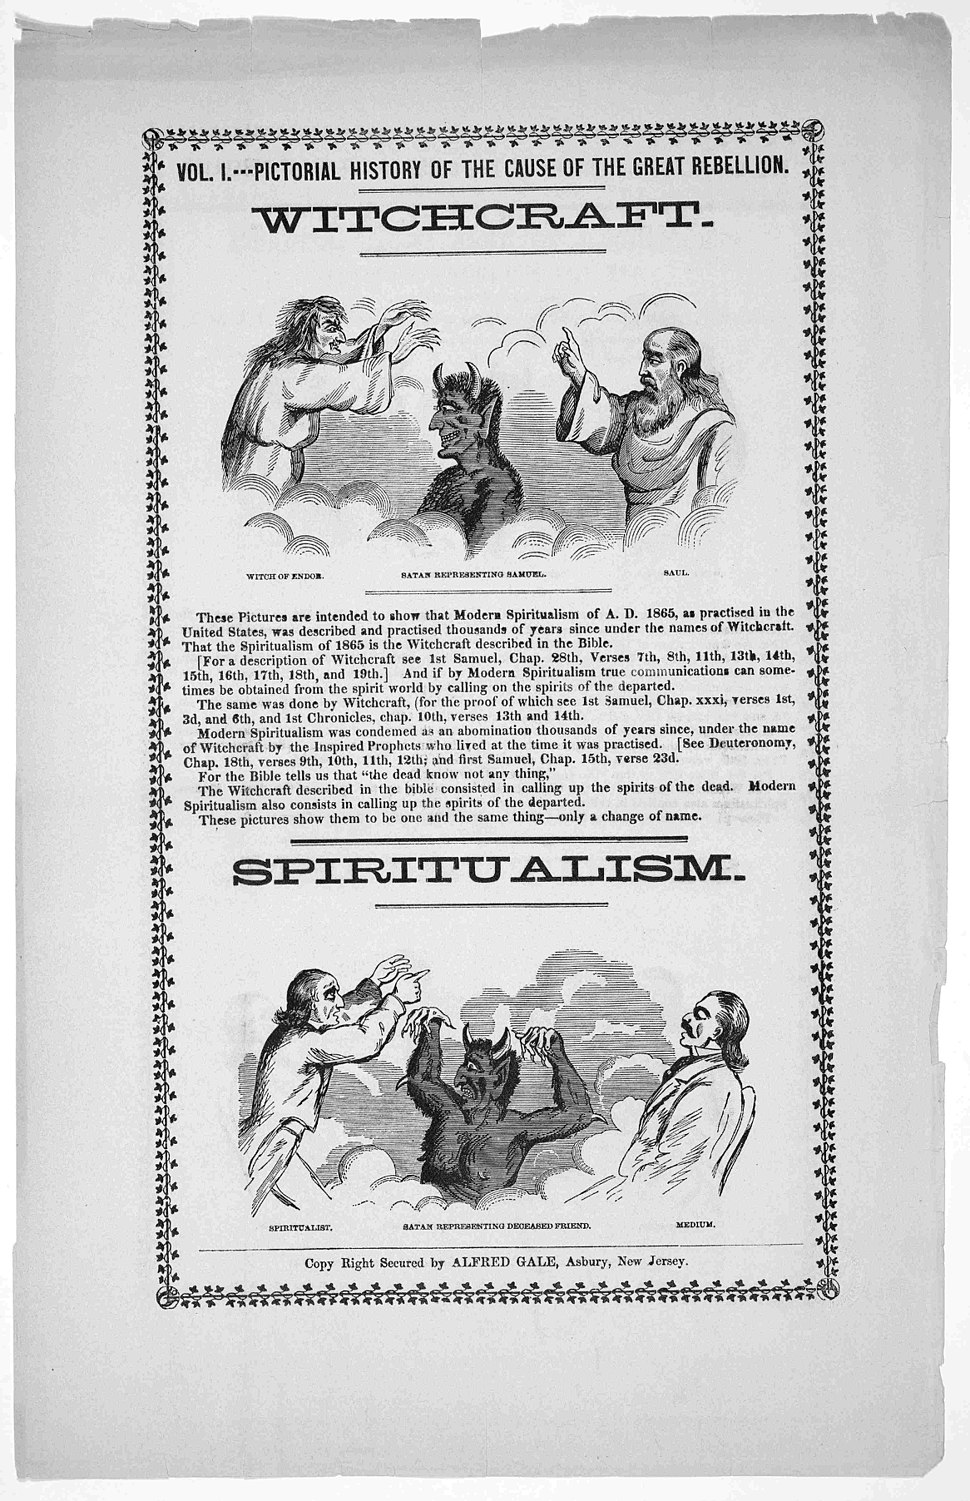 Broadsheet equating spiritualism with witchcraft